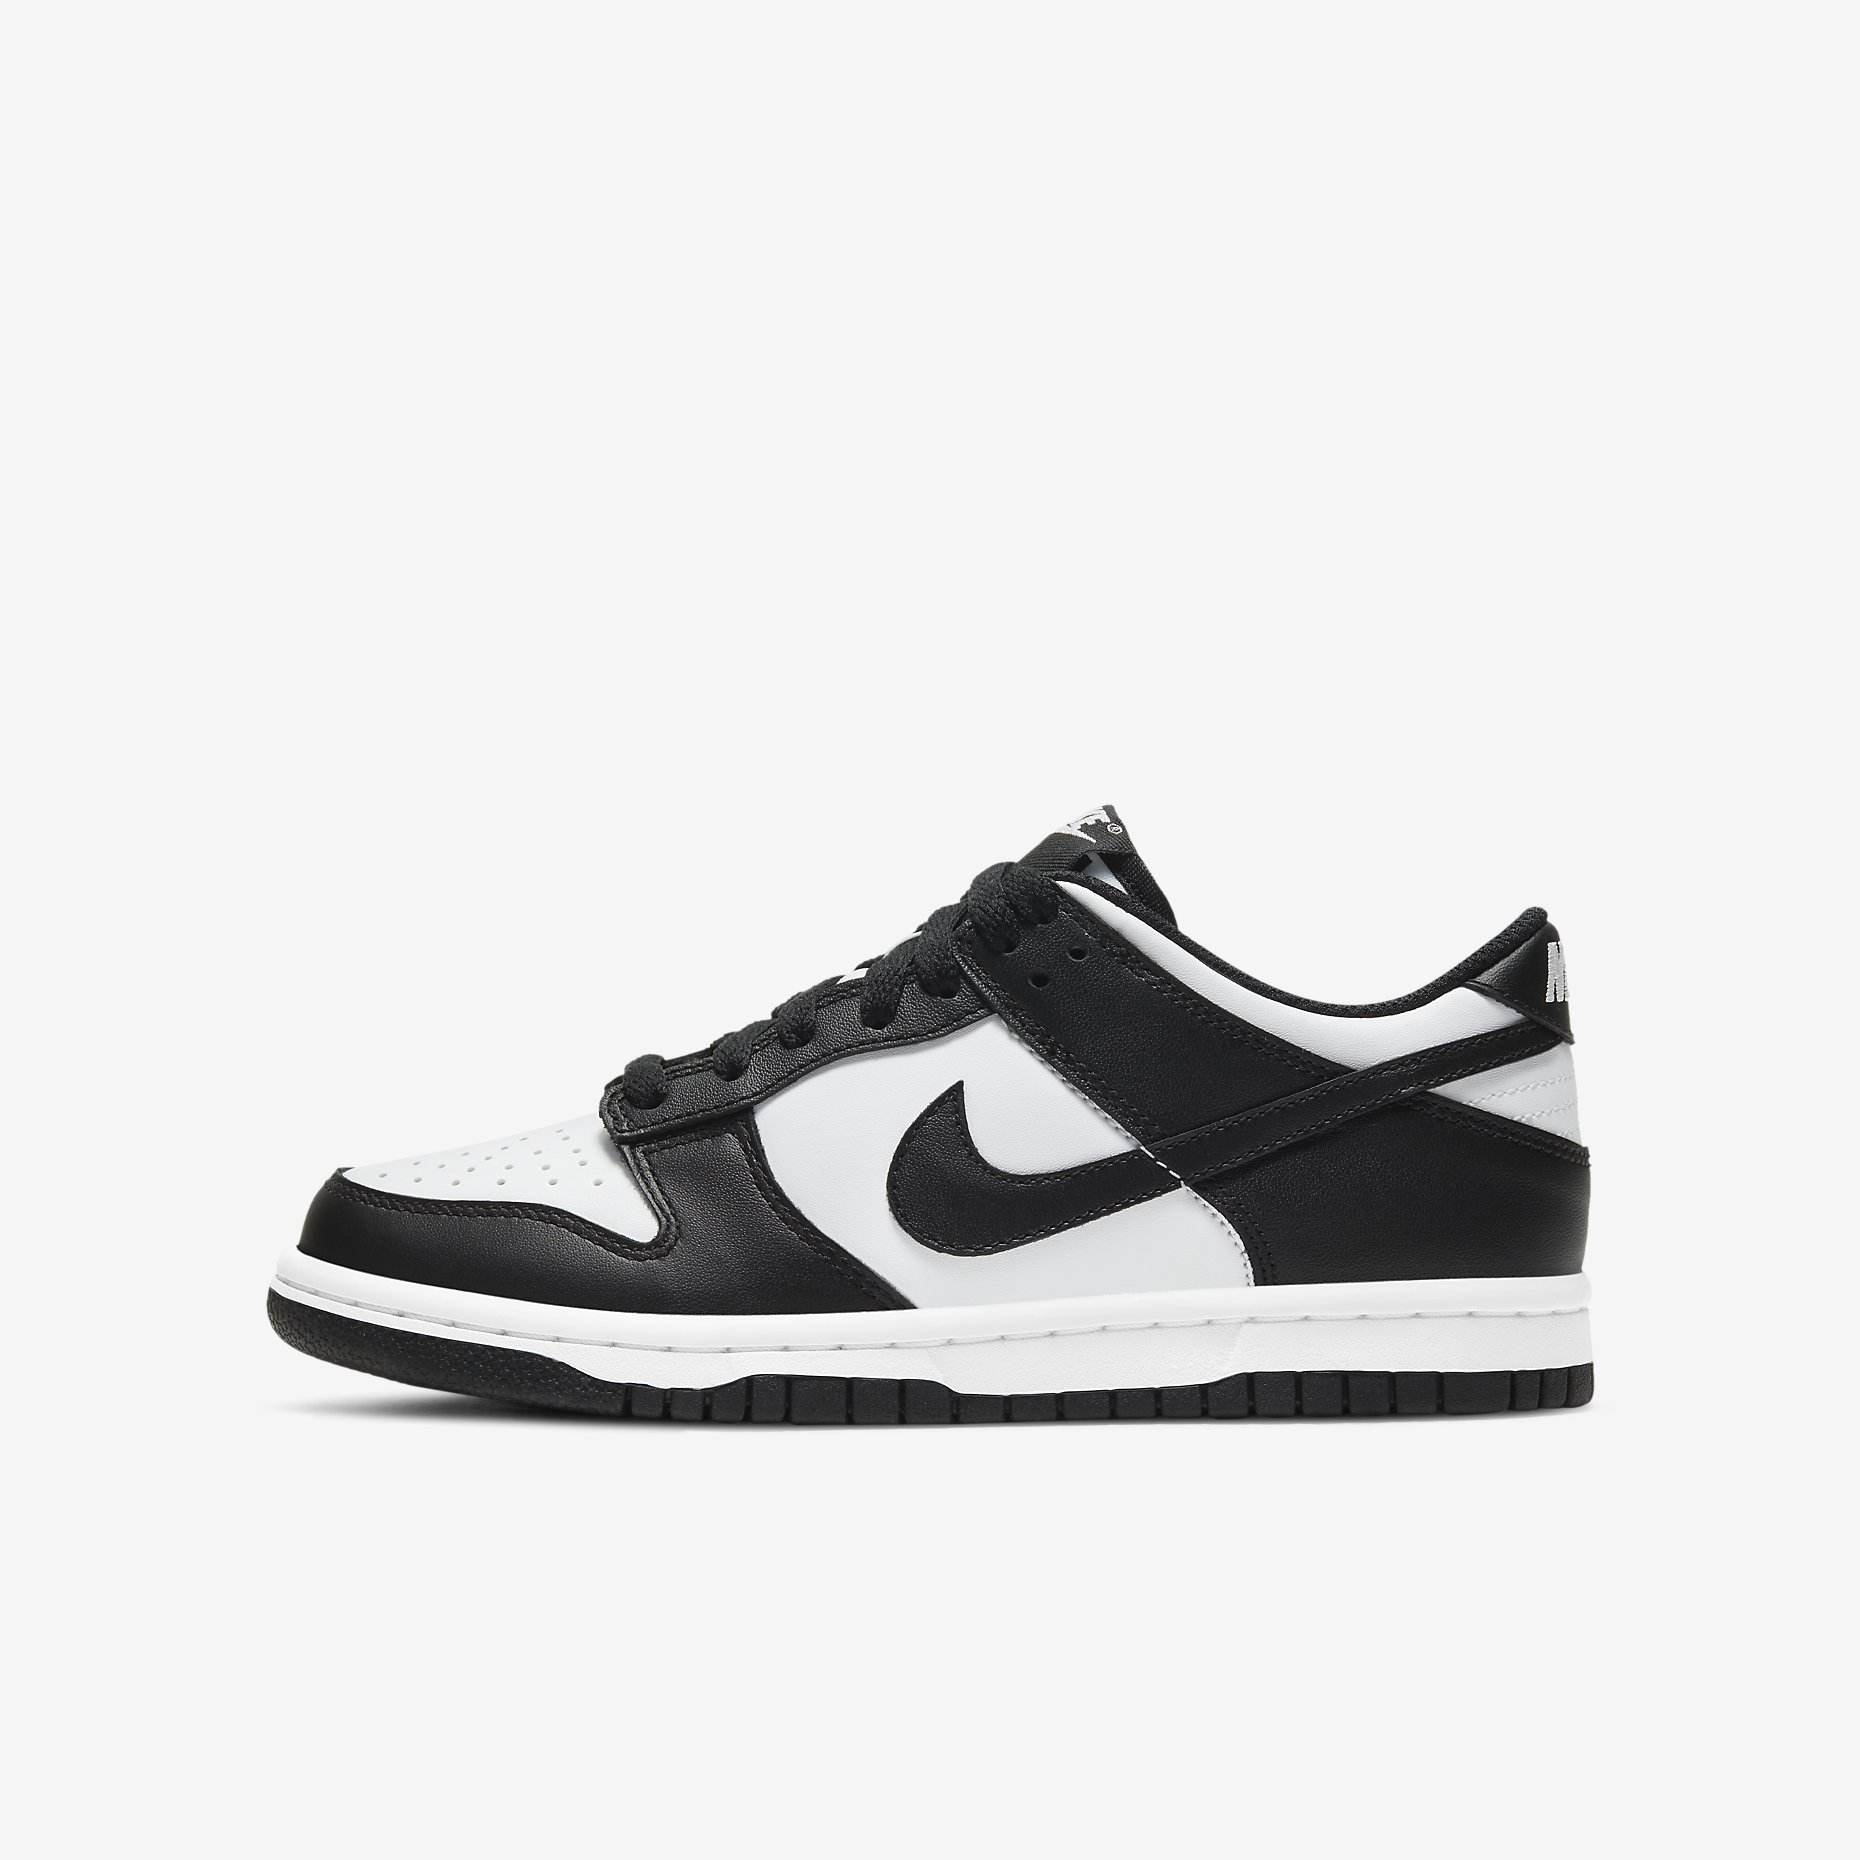 Nike Dunk Low GS 'Black/White'}